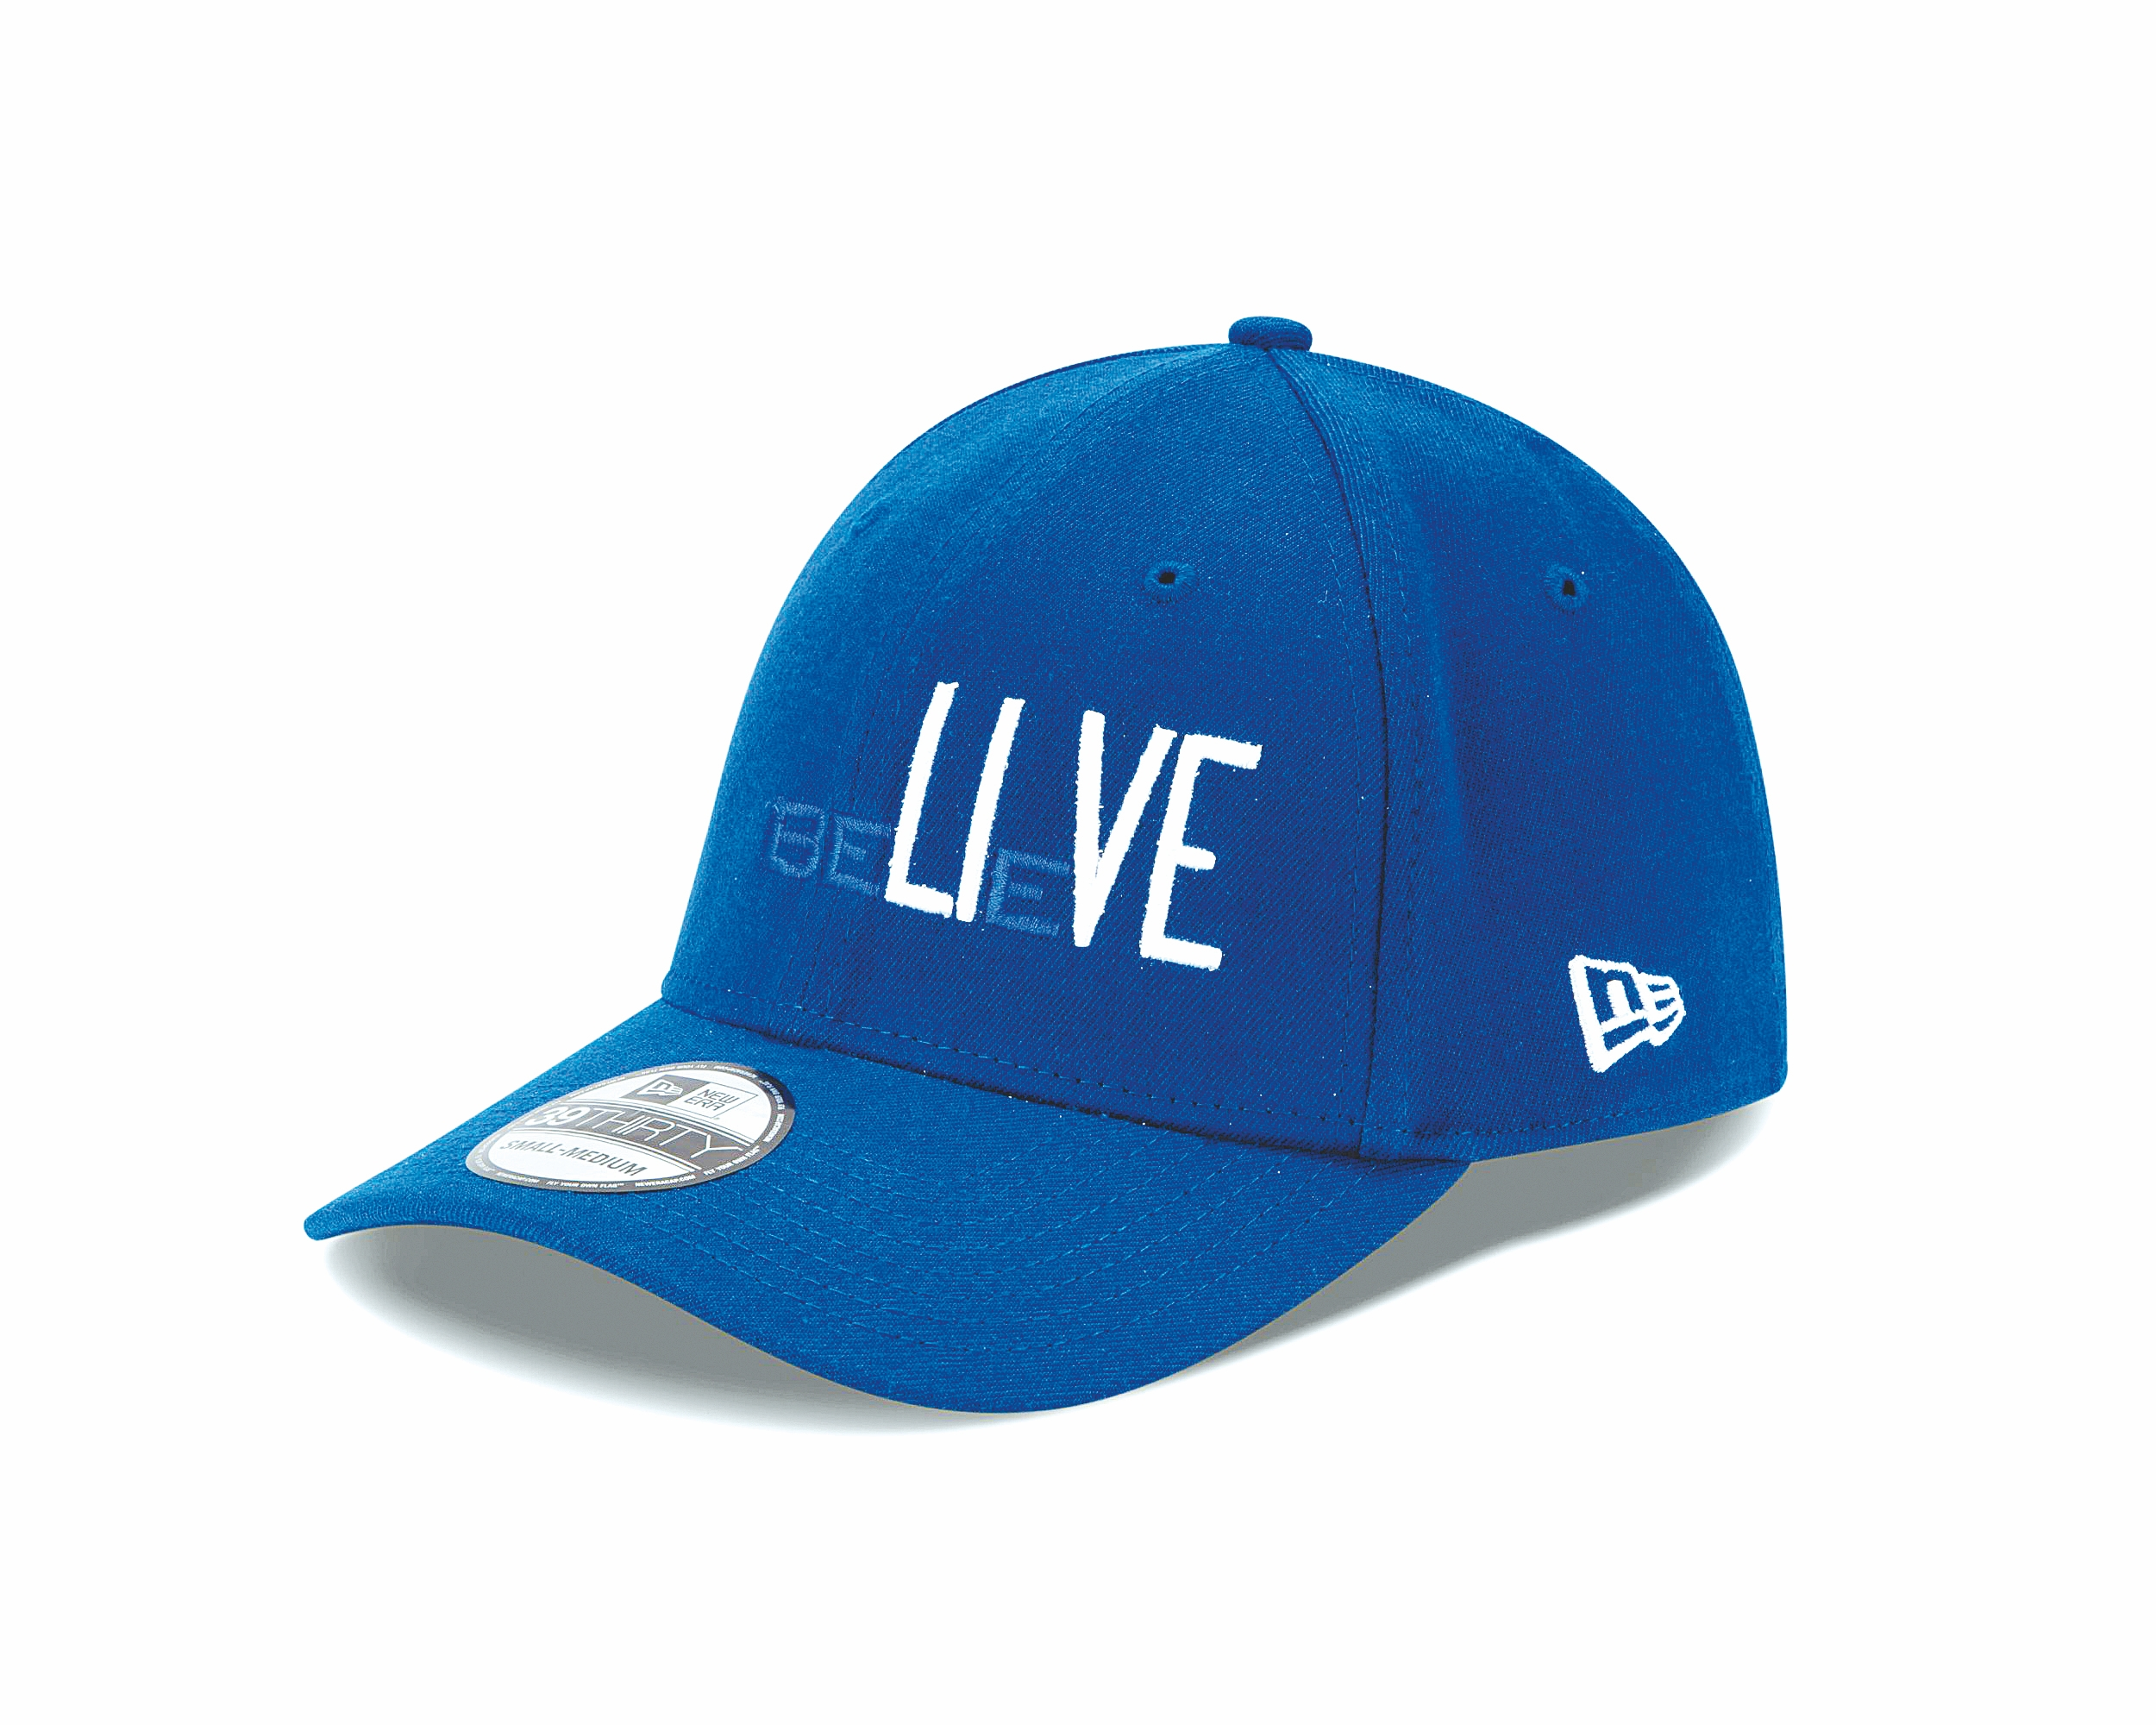 """Oversize lettering accentuates the """"LIVE"""" within """"BELIEVE."""""""